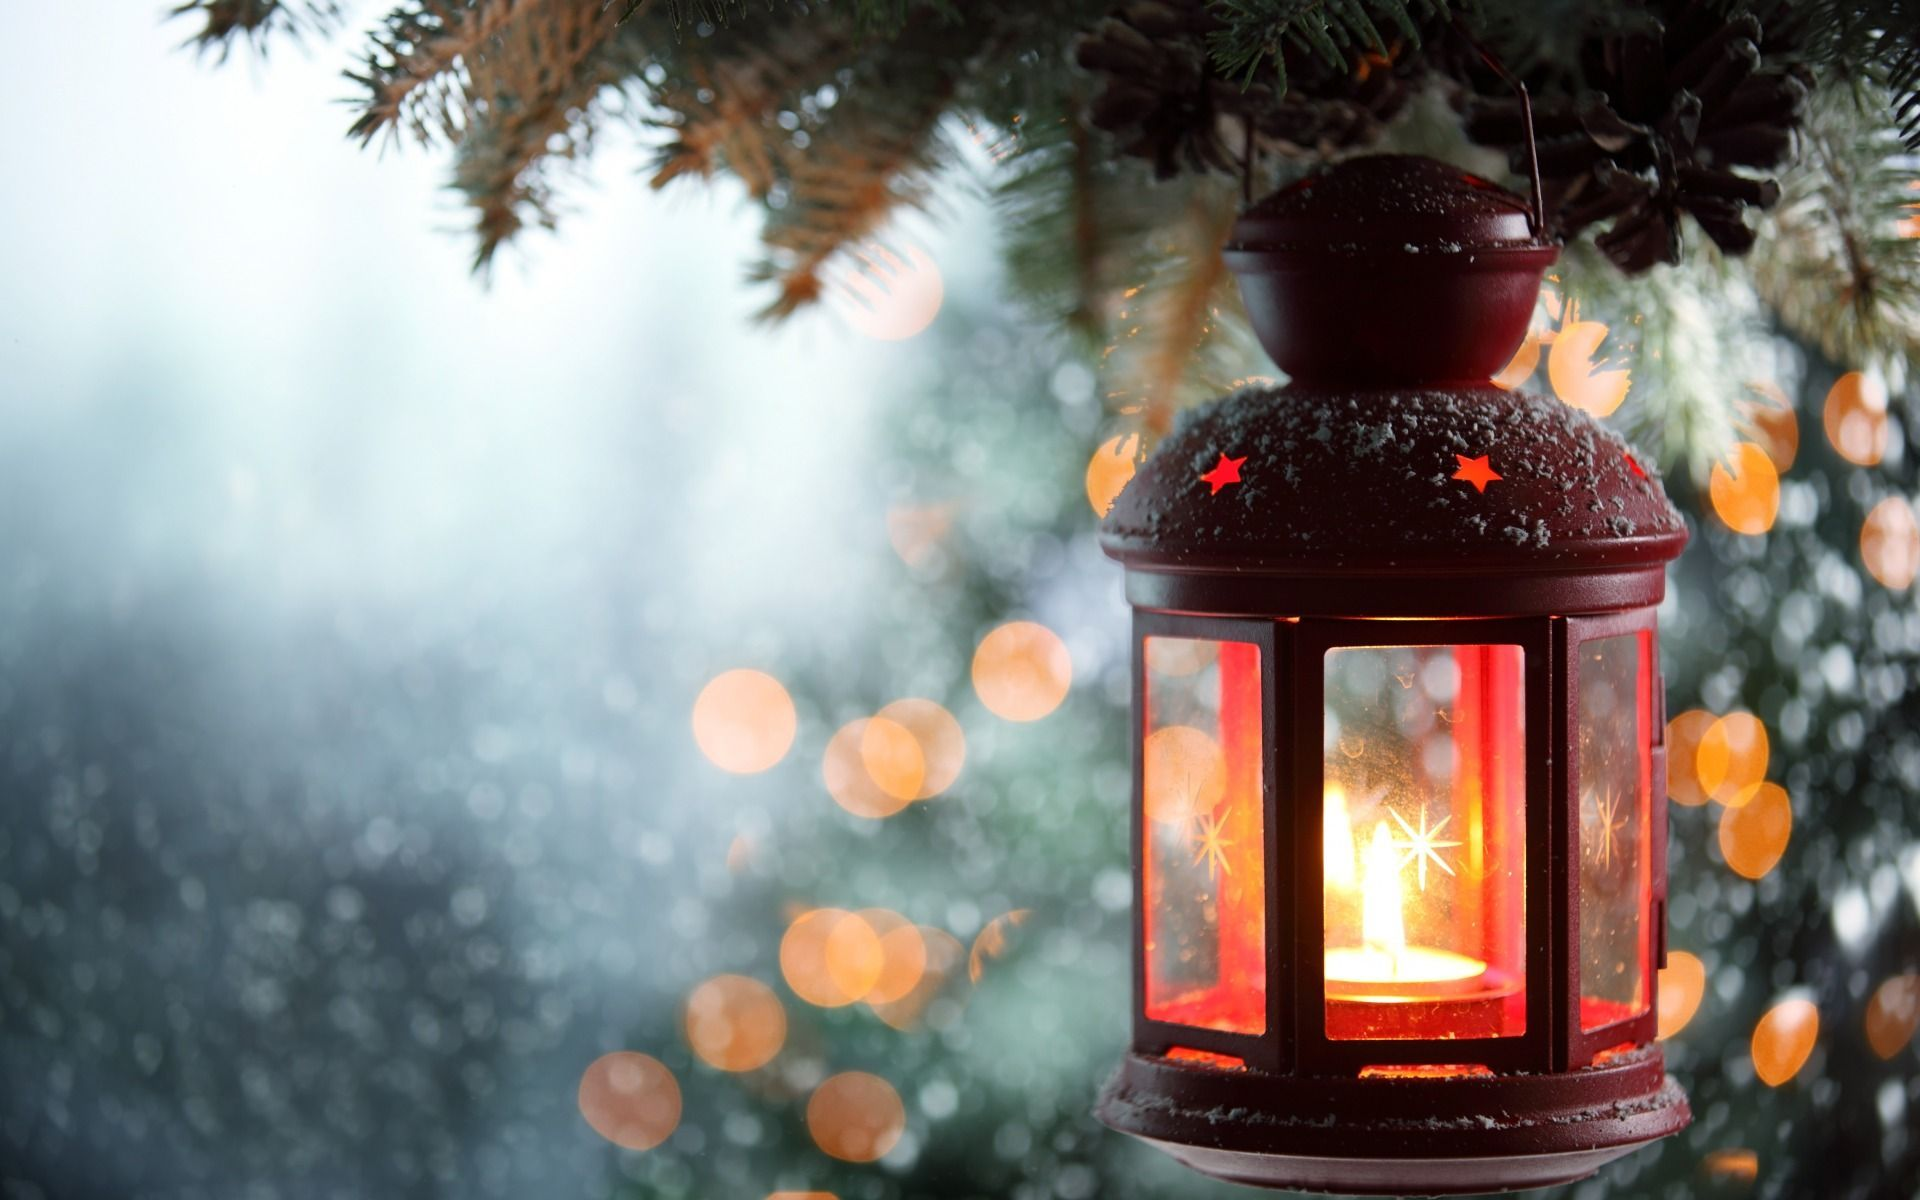 Download Wallpaper Xmas New Year Snow Candle Winter Merry